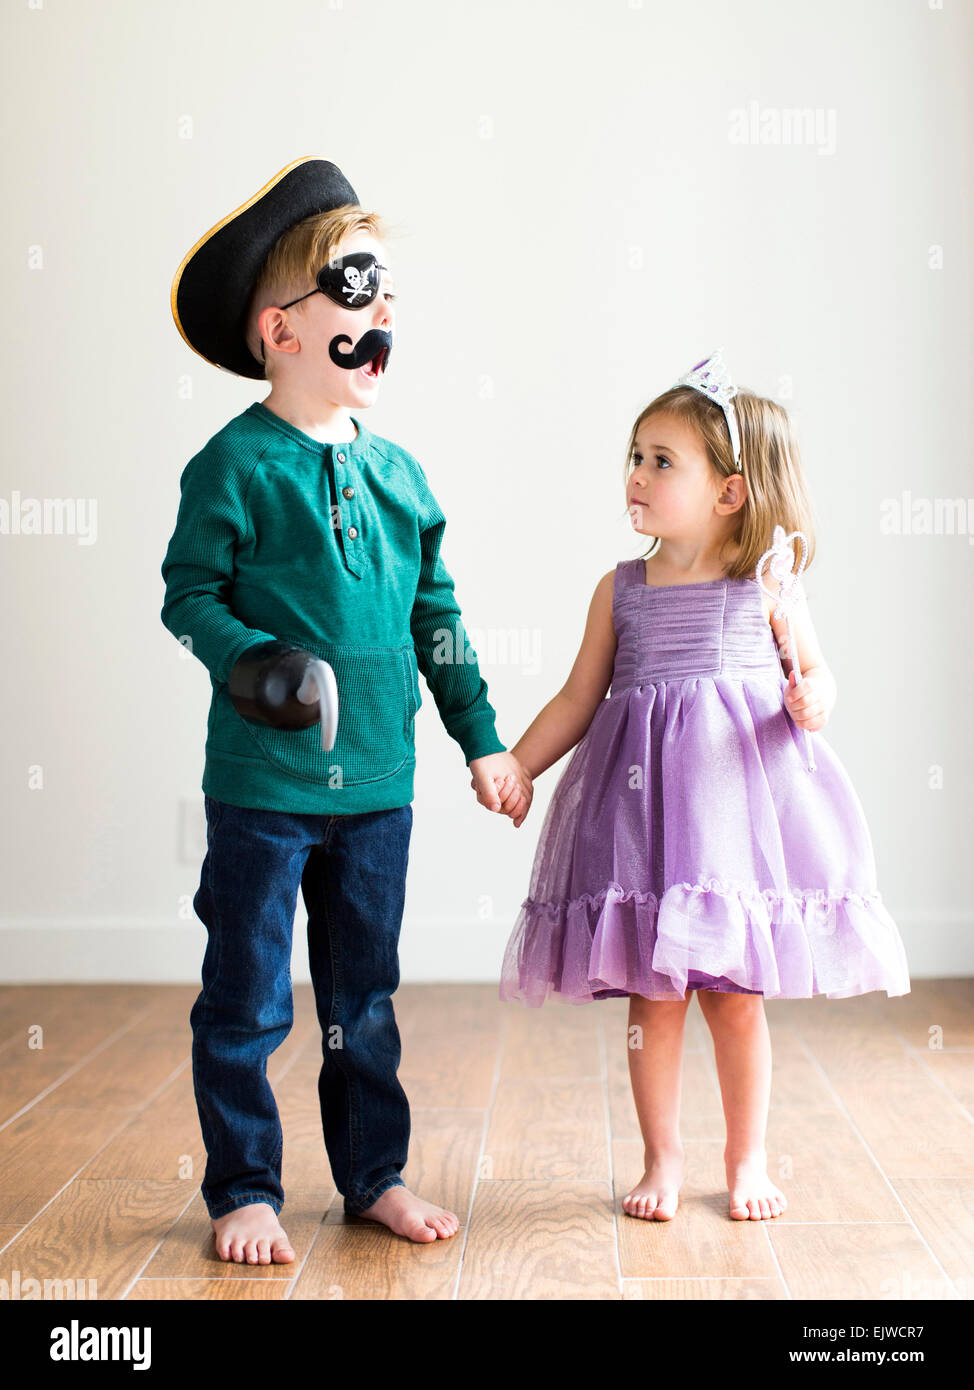 Siblings (2-3, 4-5) dressed up as pirate and princess - Stock Image